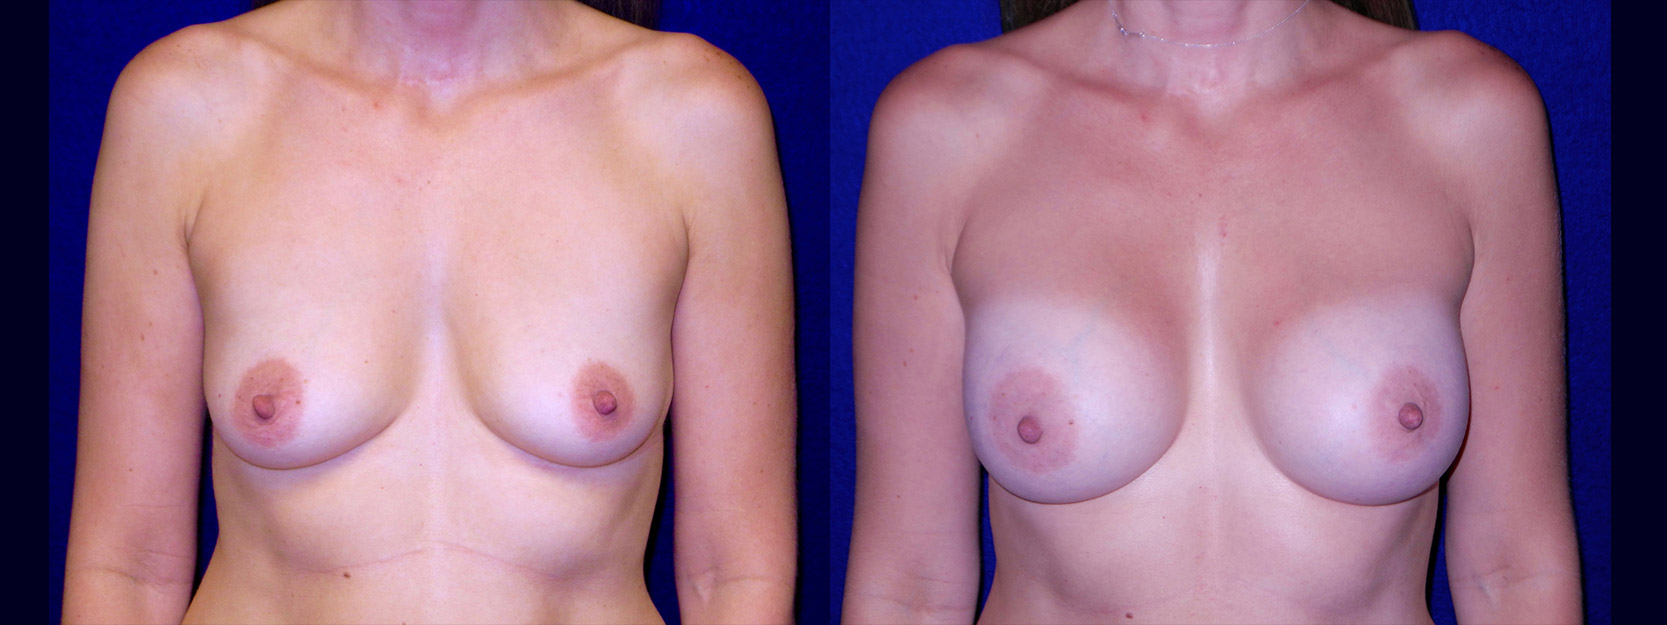 Frontal View - Breast Augmentation After Pregnancy - Silicone Implants